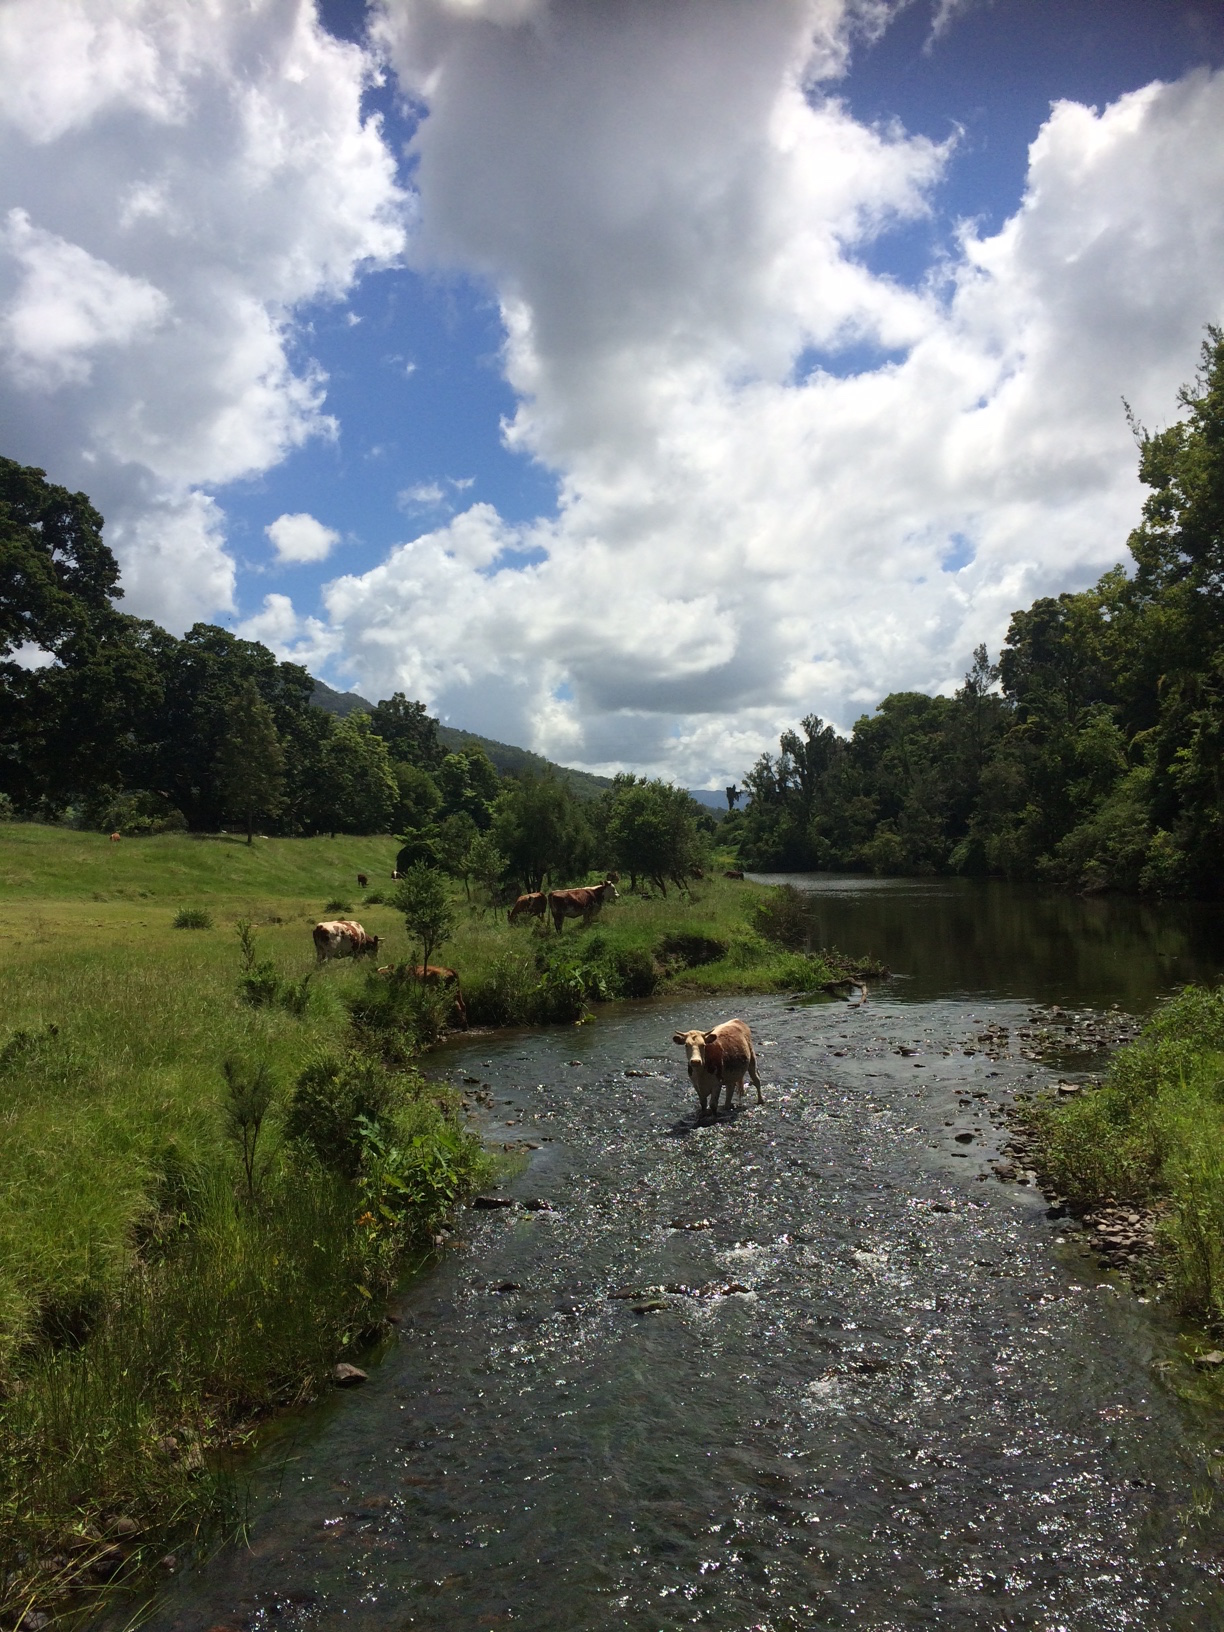 Quick dip in the creek with the cows. What a great way to de-stress.